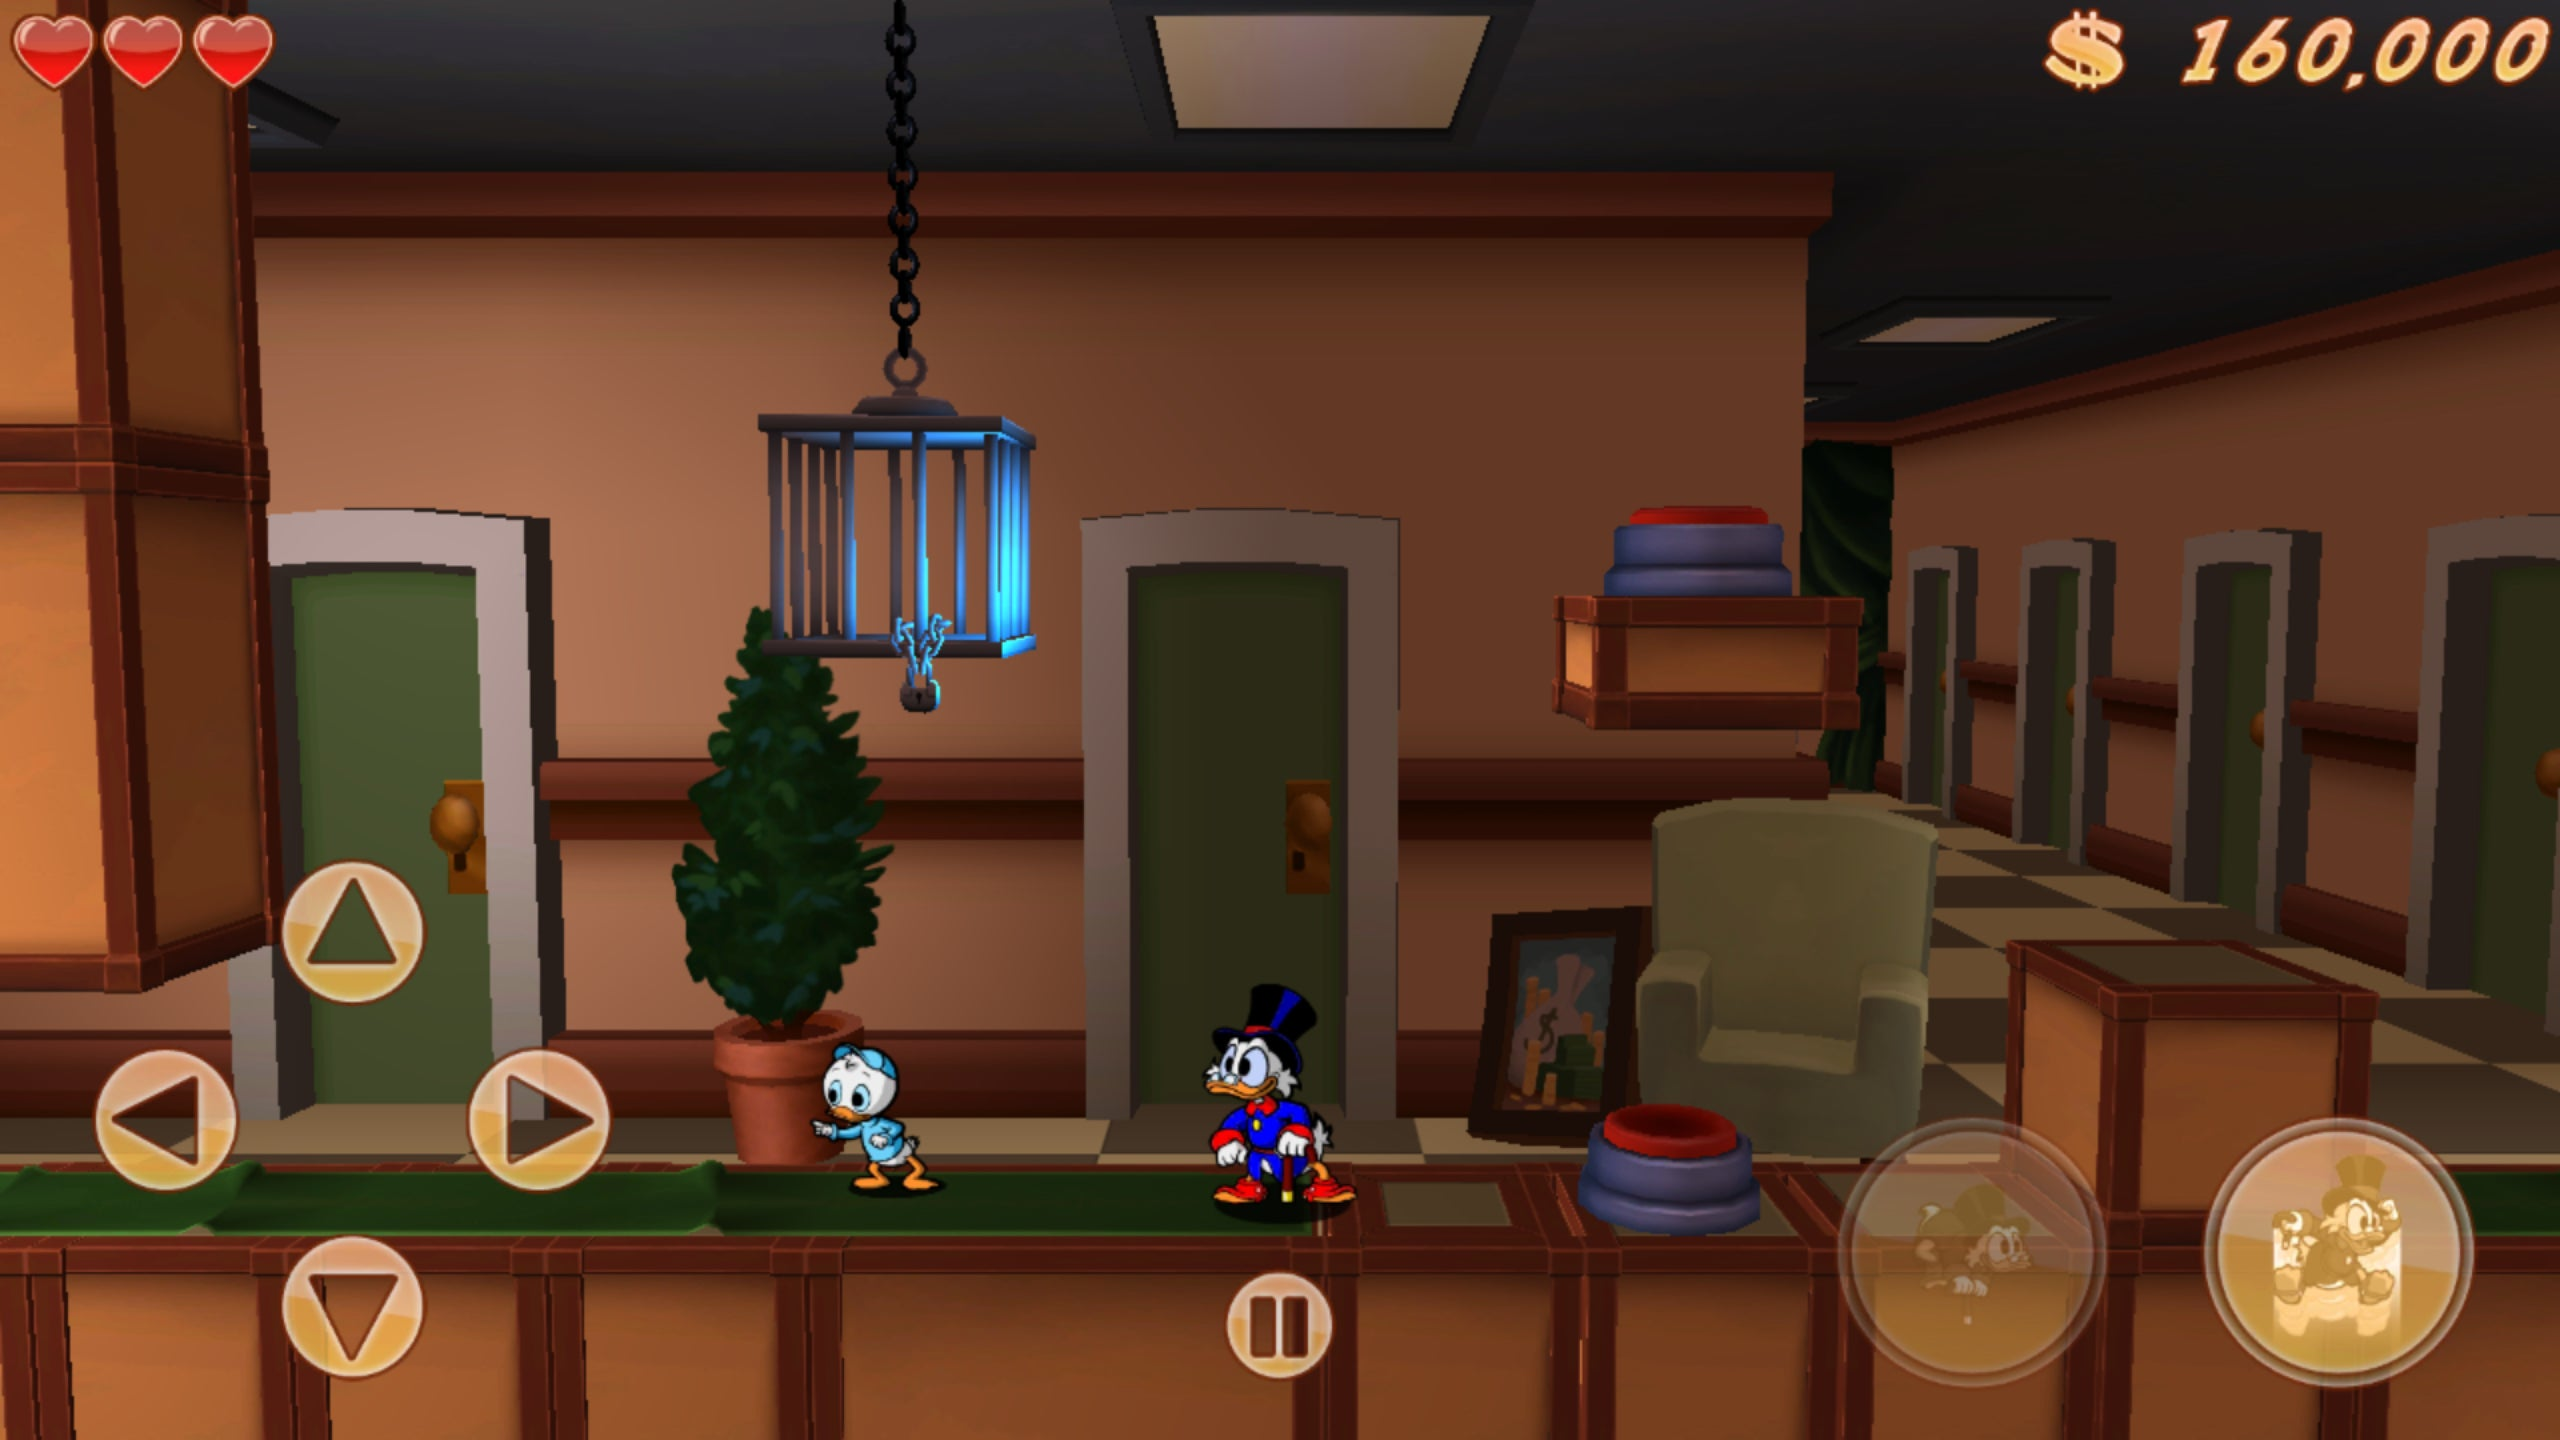 ducktales remastered android game free download